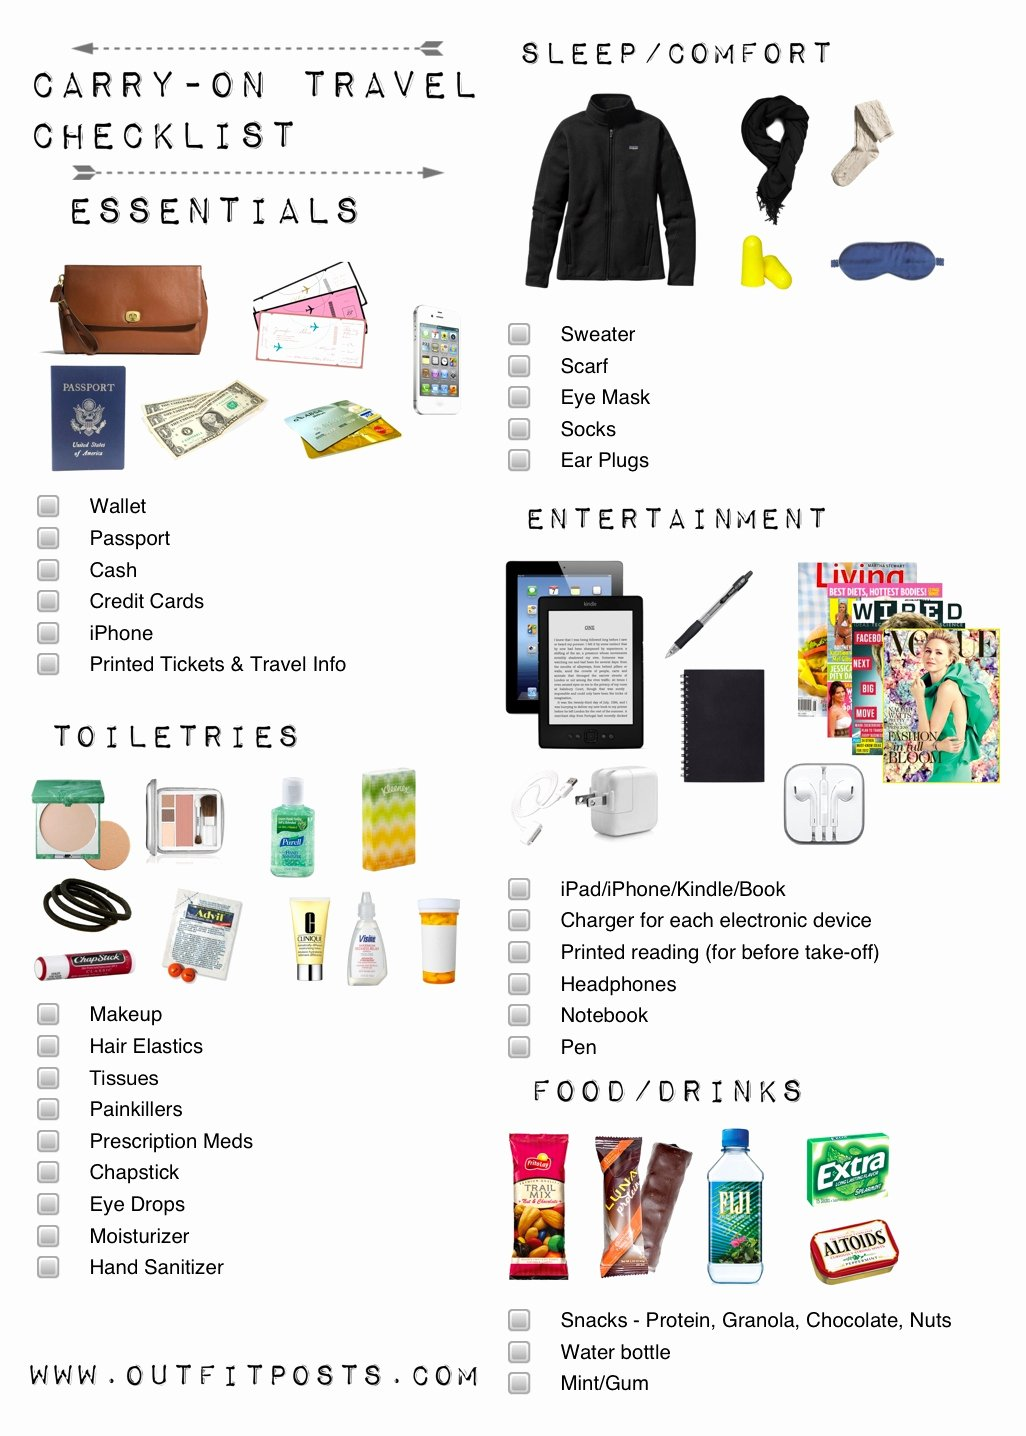 Travel Packing List Fresh Outfit Posts Packing Carry On tote for A Long Flight